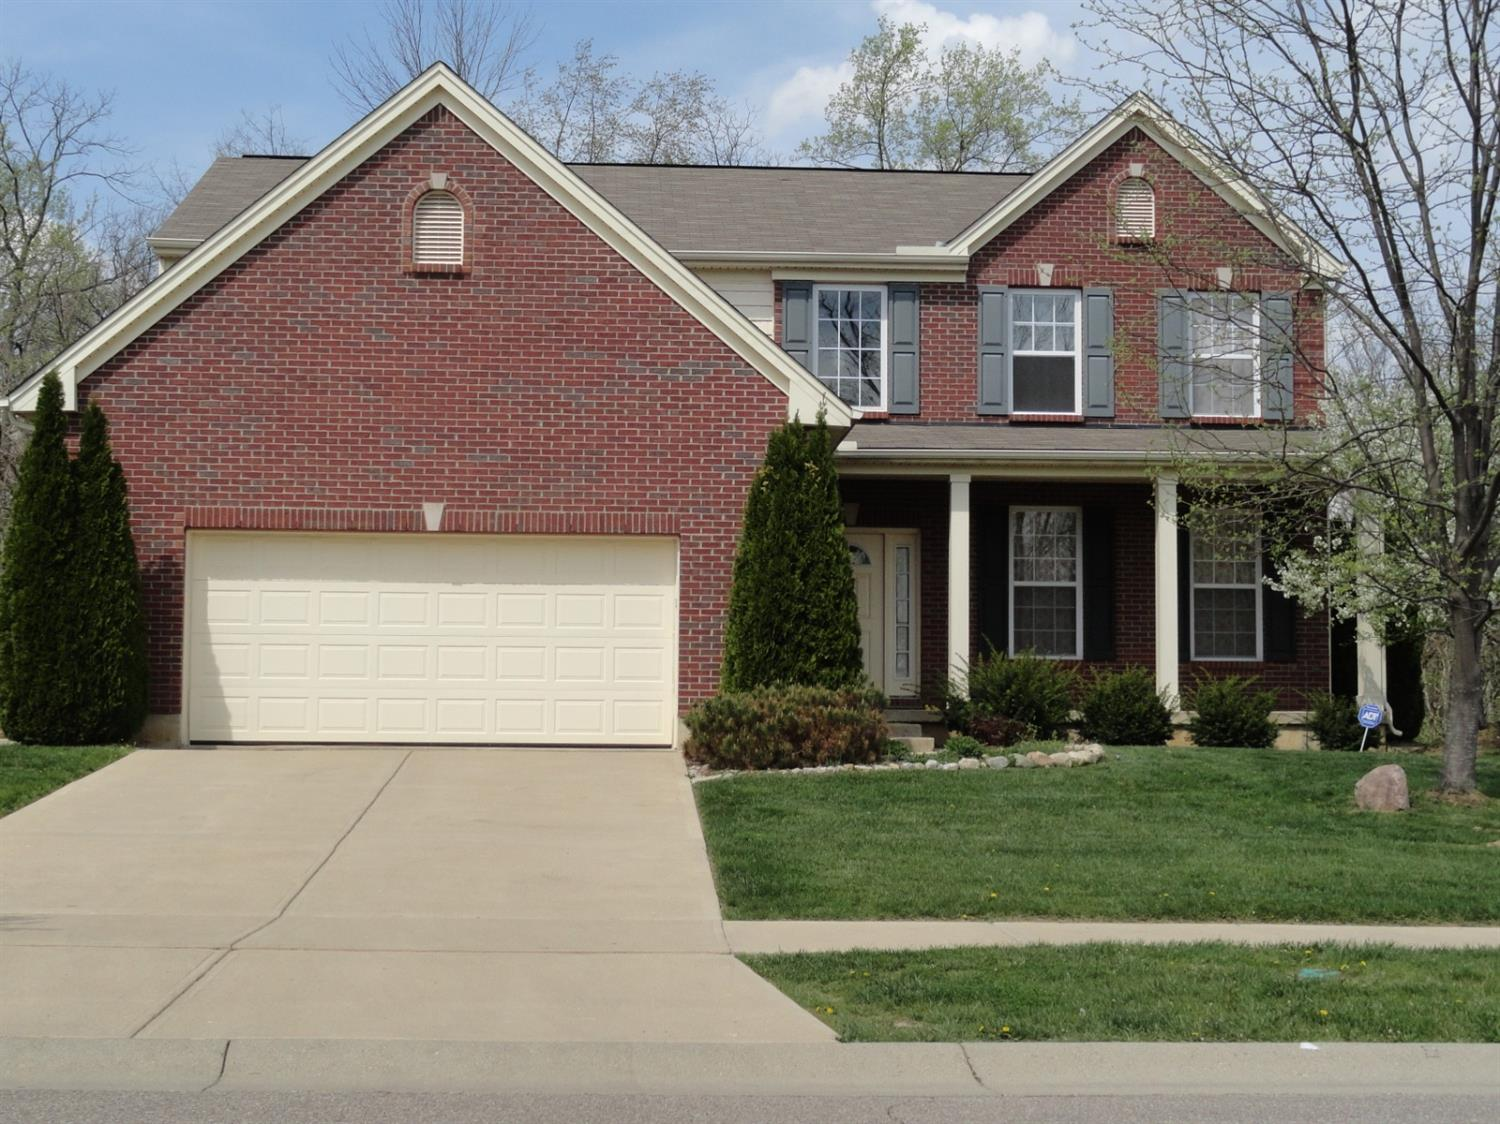 Property for sale at 85 Hunter Woods Drive, Oxford,  Ohio 45056